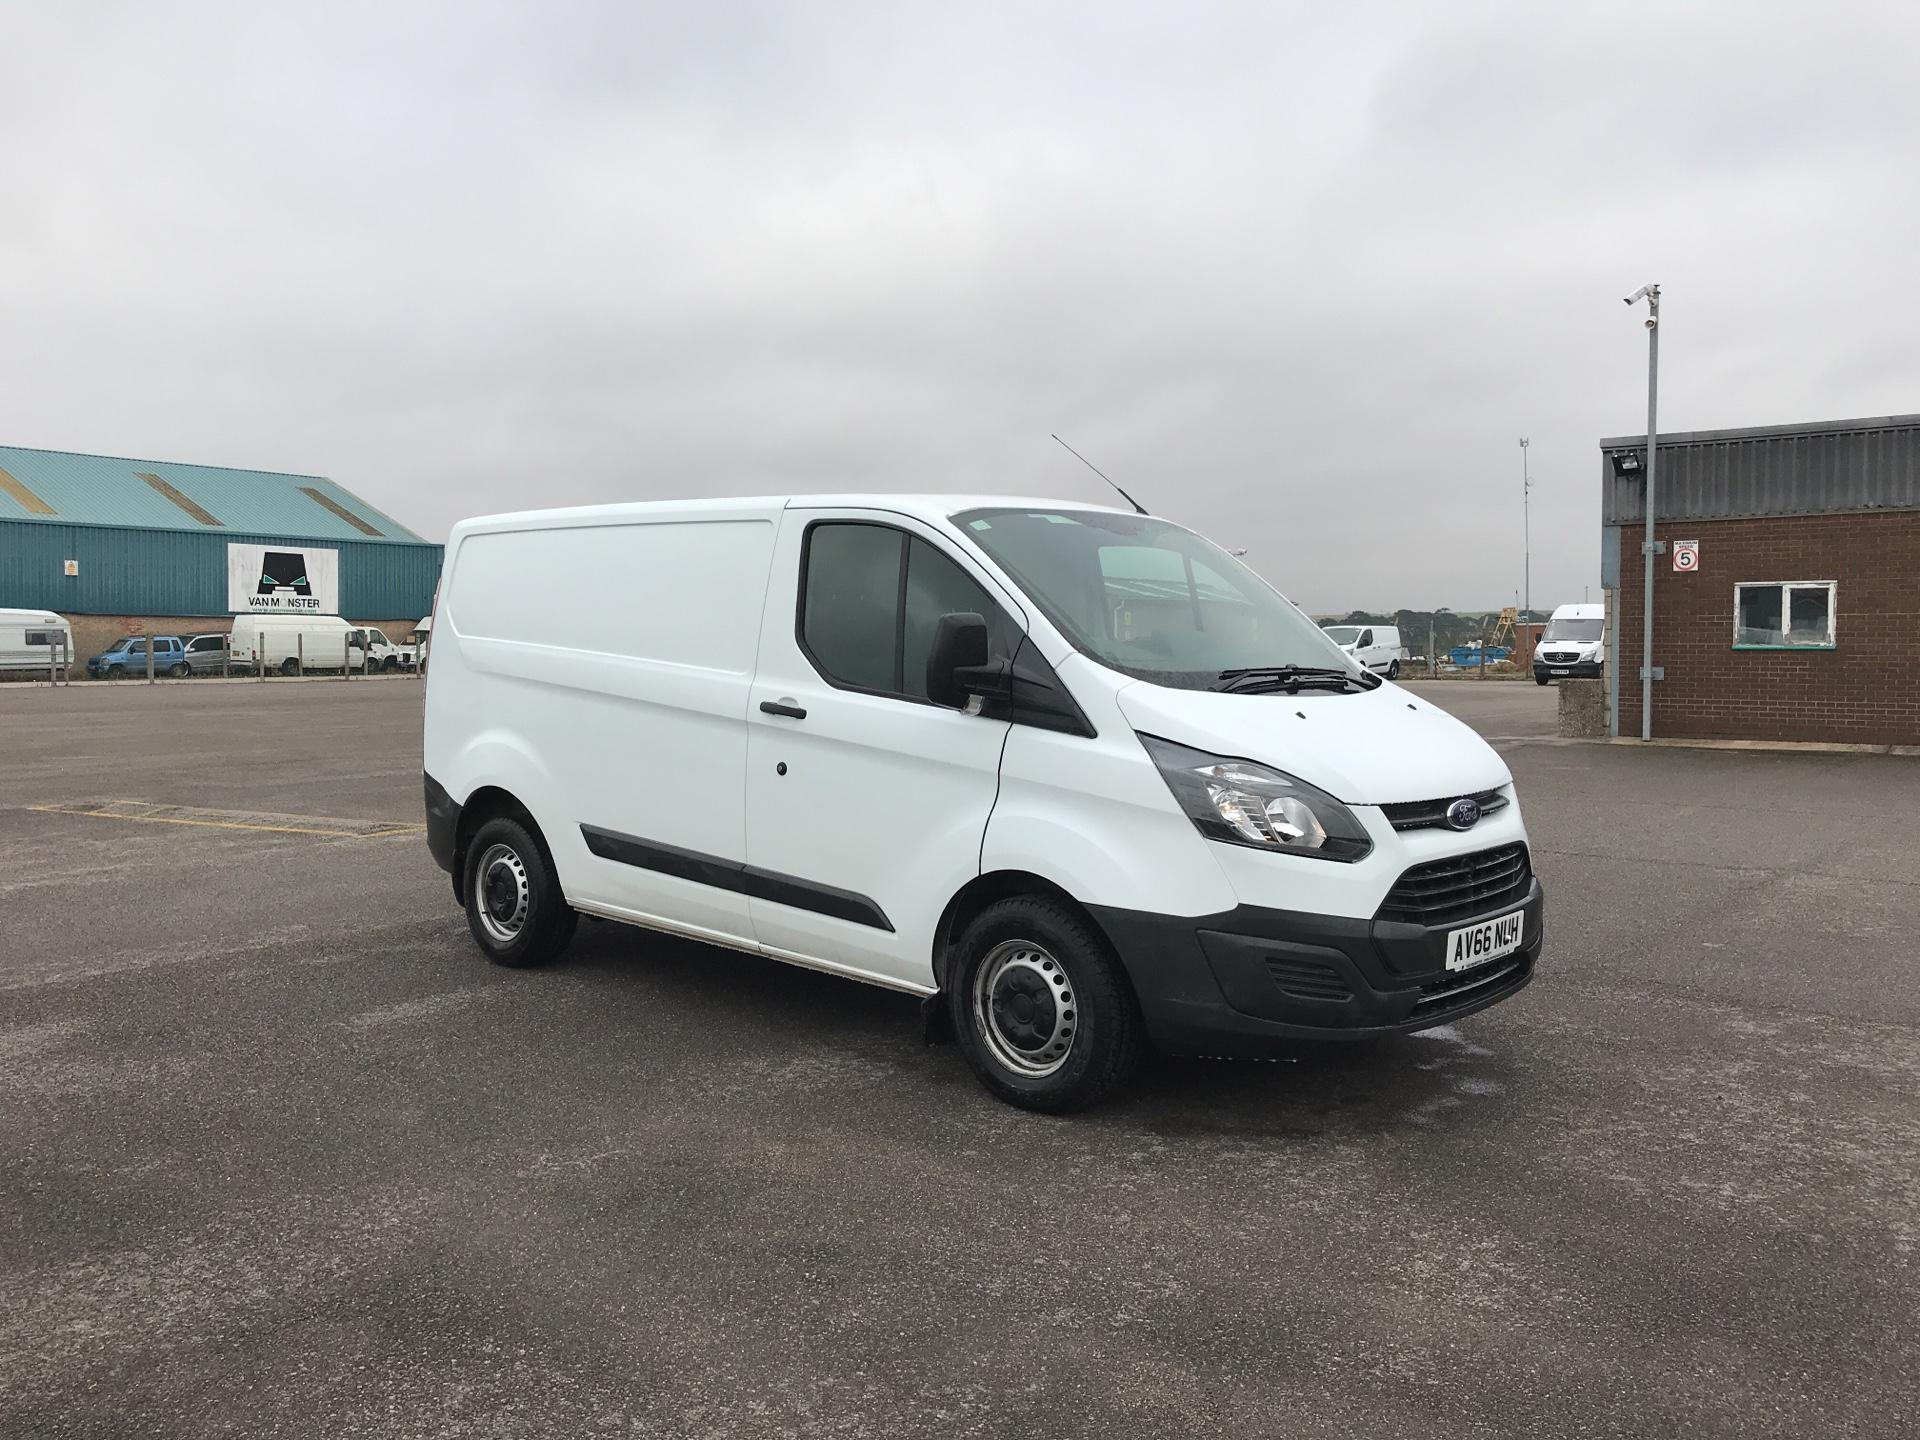 2016 Ford Transit Custom 270 L1 DIESEL FWD 2.0 TDCI 105PS LOW ROOF VAN EURO 6 (AV66NUH)